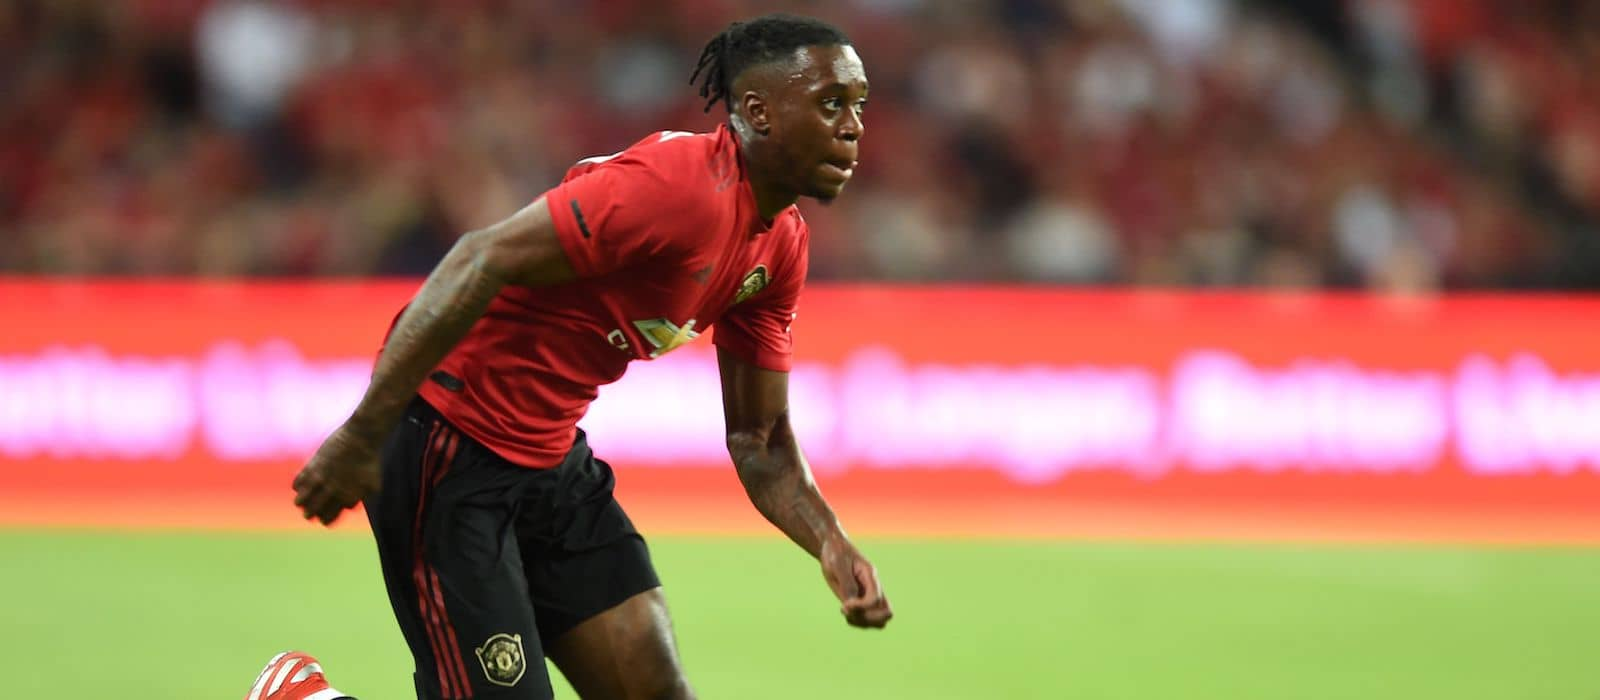 Aaron Wan-Bissaka continues to impress for Manchester United against Kristiansund